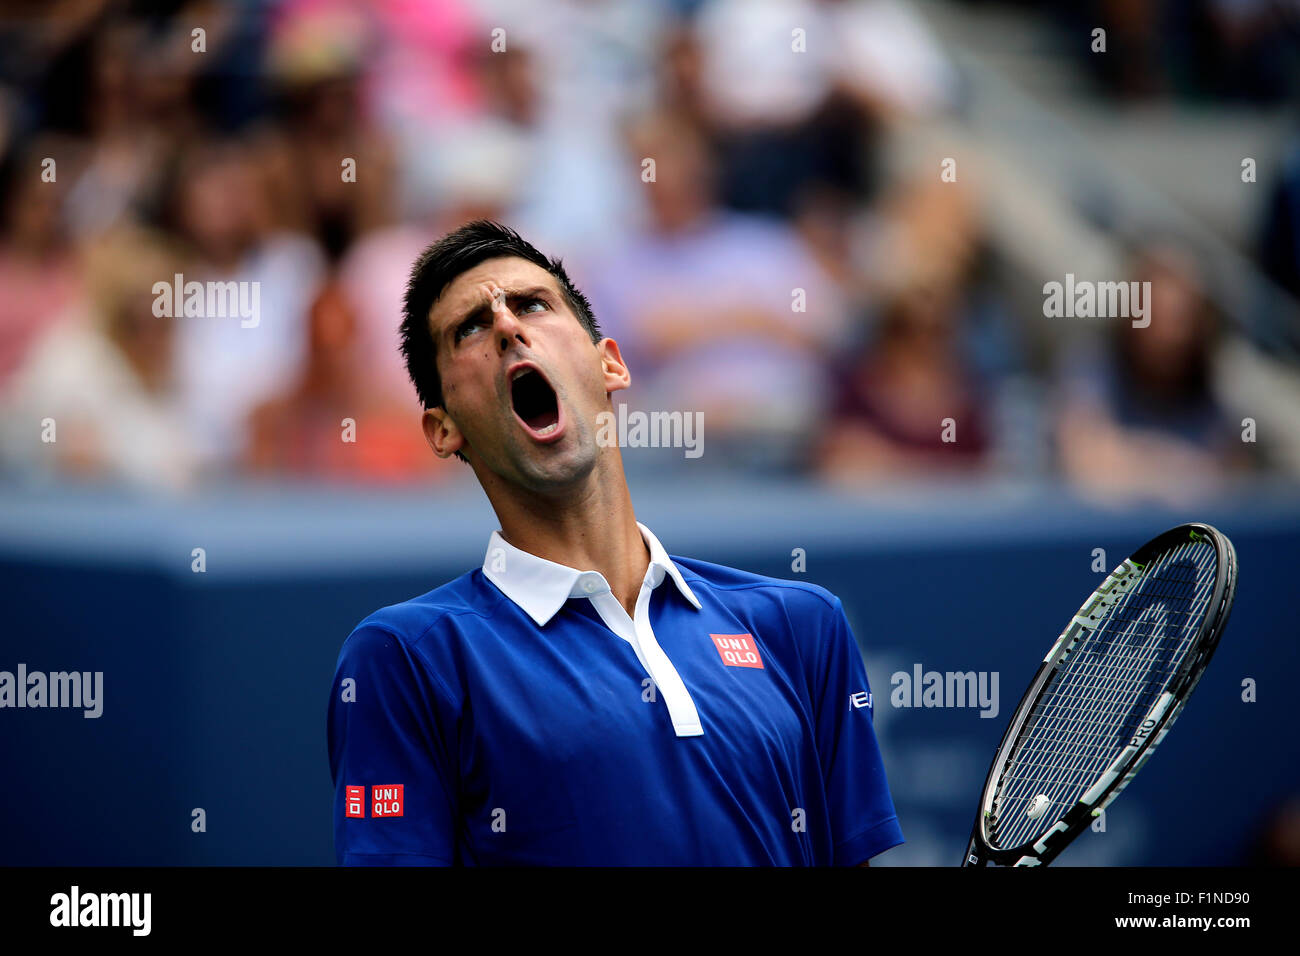 New York, USA. 4th September, 2015. Novak Djokovic reacts to a shot during his third round match against Andreas - Stock Image